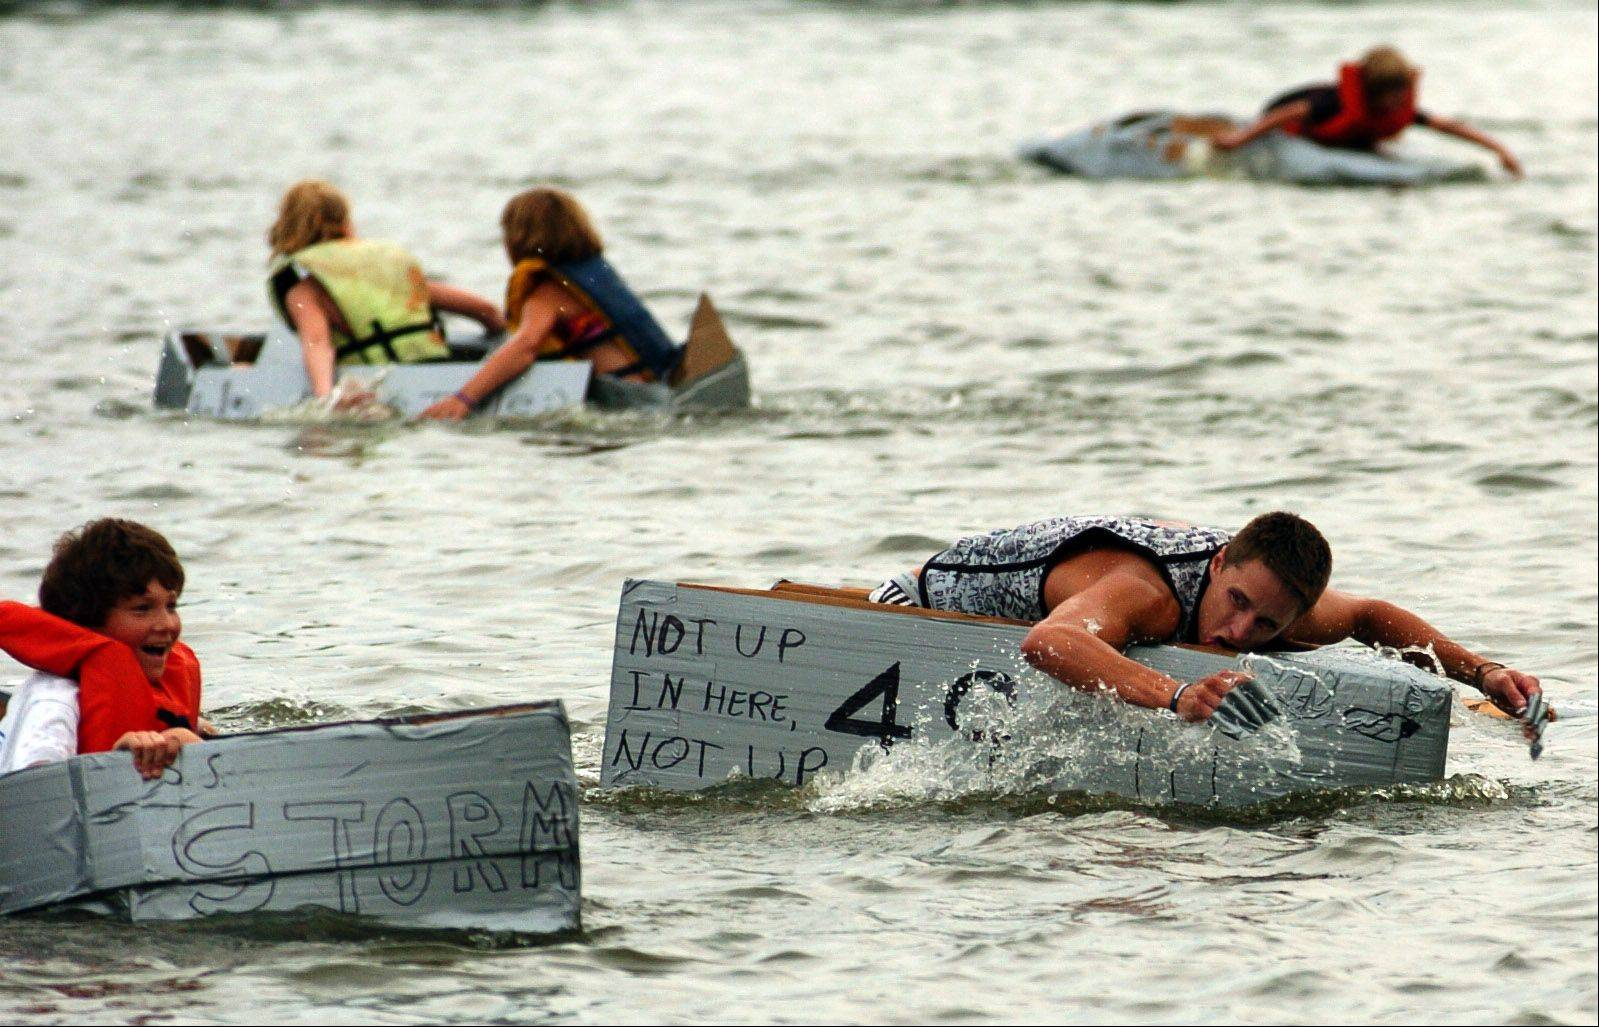 Russel Cardelli of Algonquin, 21, earned first place for Team Cardelli, in the Cardboard Boat Regatta at last year�s Algonquin Founders� Days Festival.